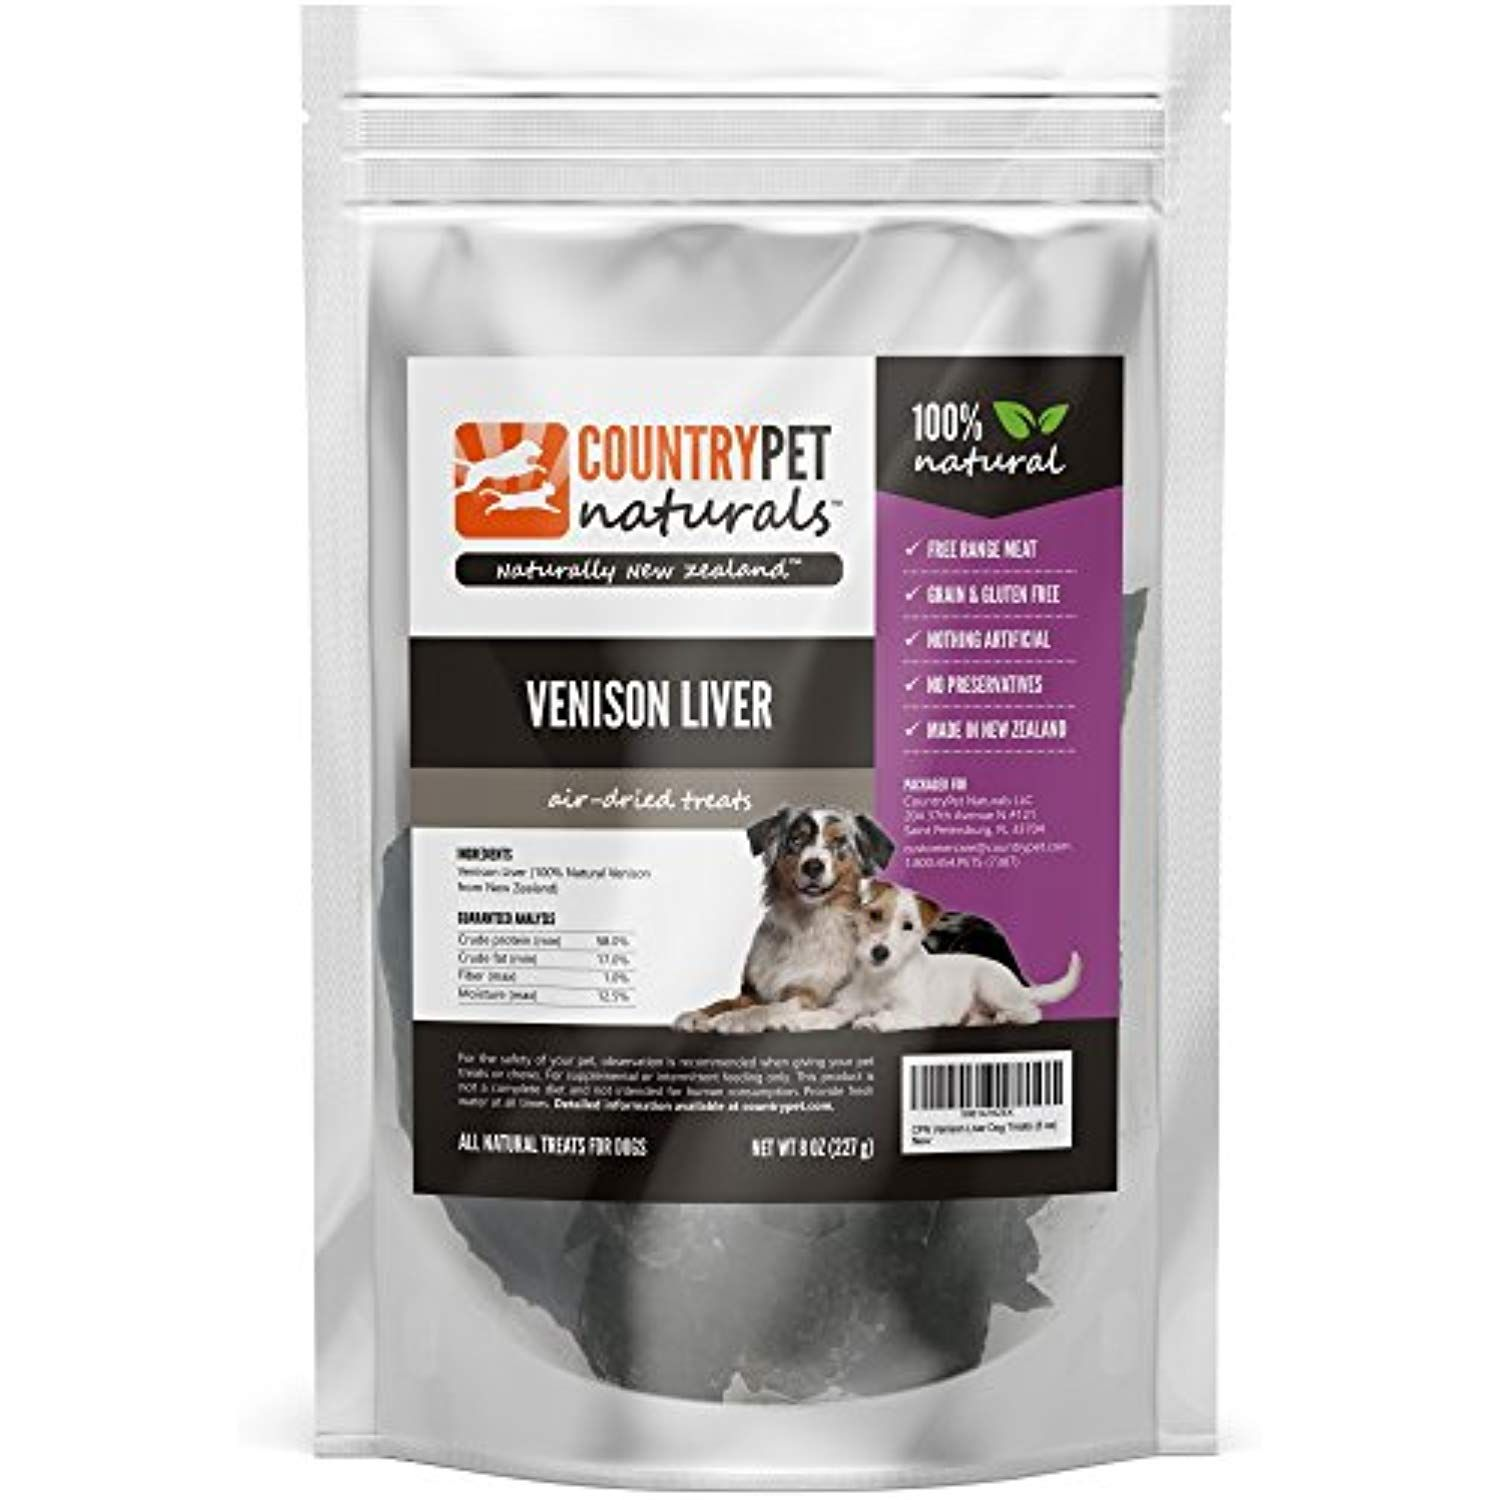 Venison Liver Treats For Dogs By Countrypet Naturals 8 Ounces